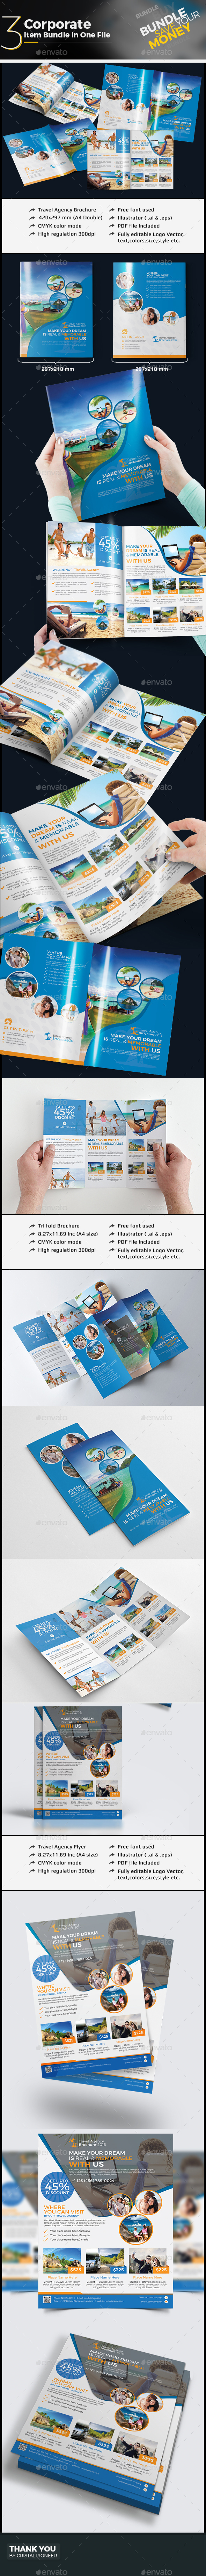 Travel Agency Branding Bundle - Corporate Brochures